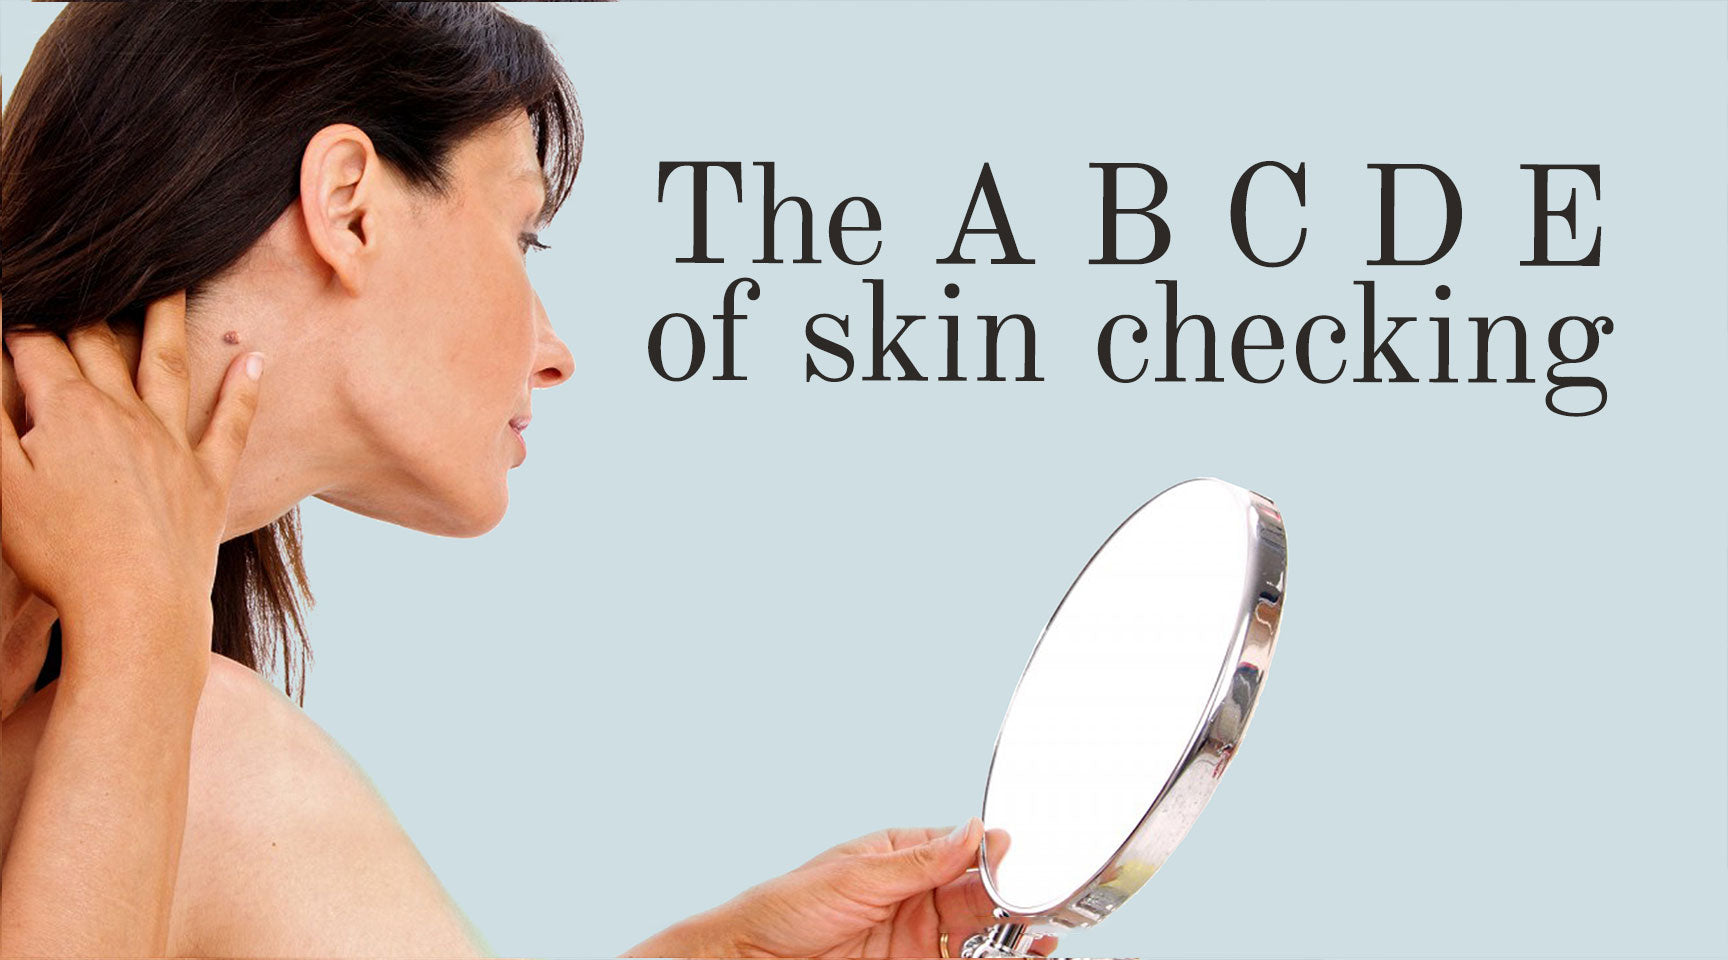 The A B C D E of skin checking